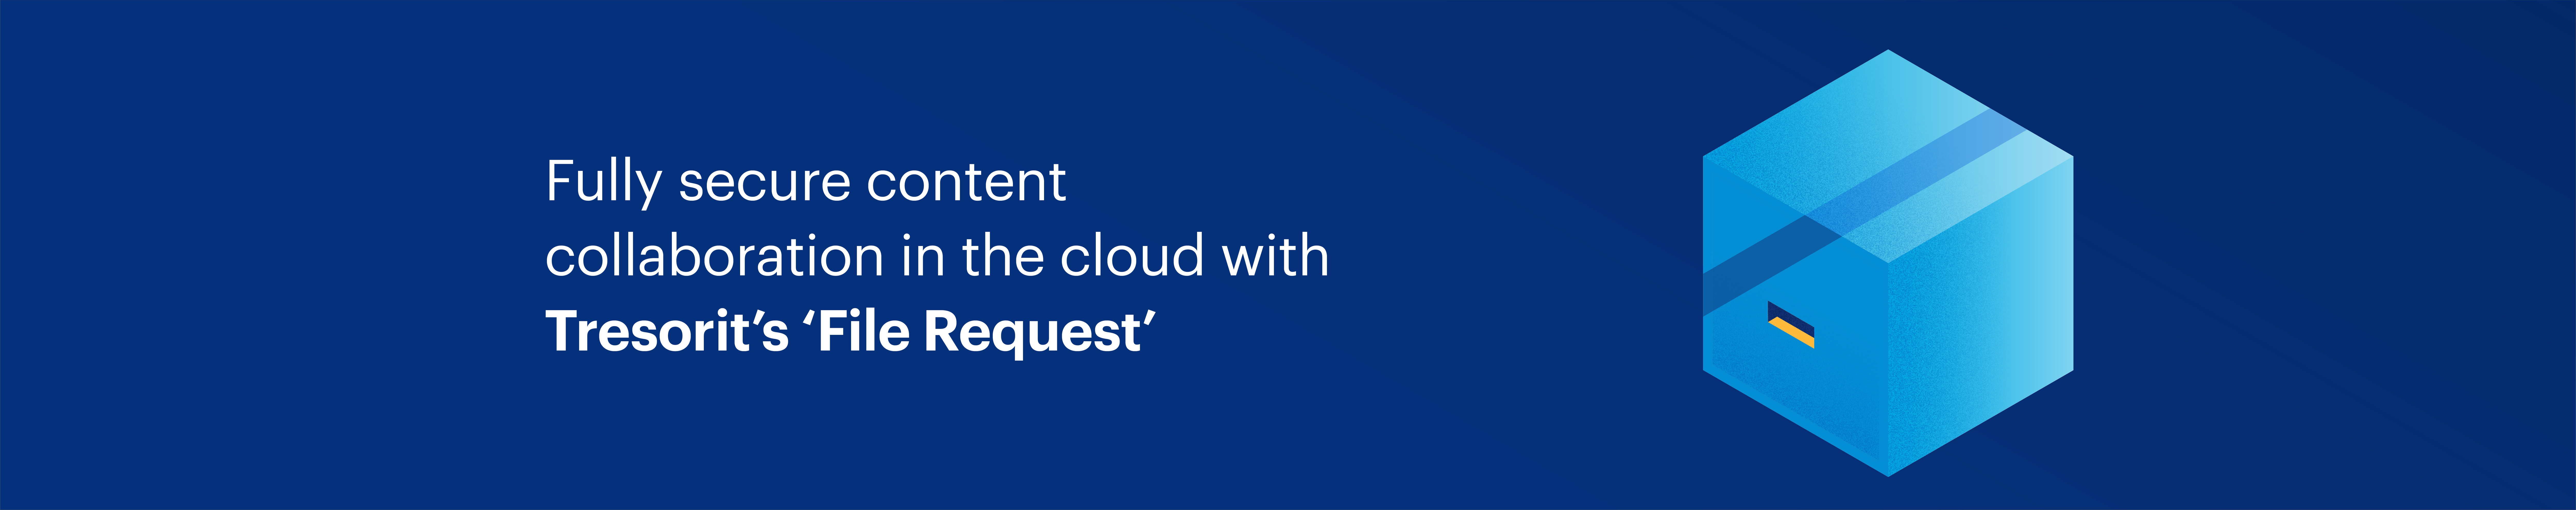 Fully secure content collaboration in the cloud with Tresorit's 'File Request'